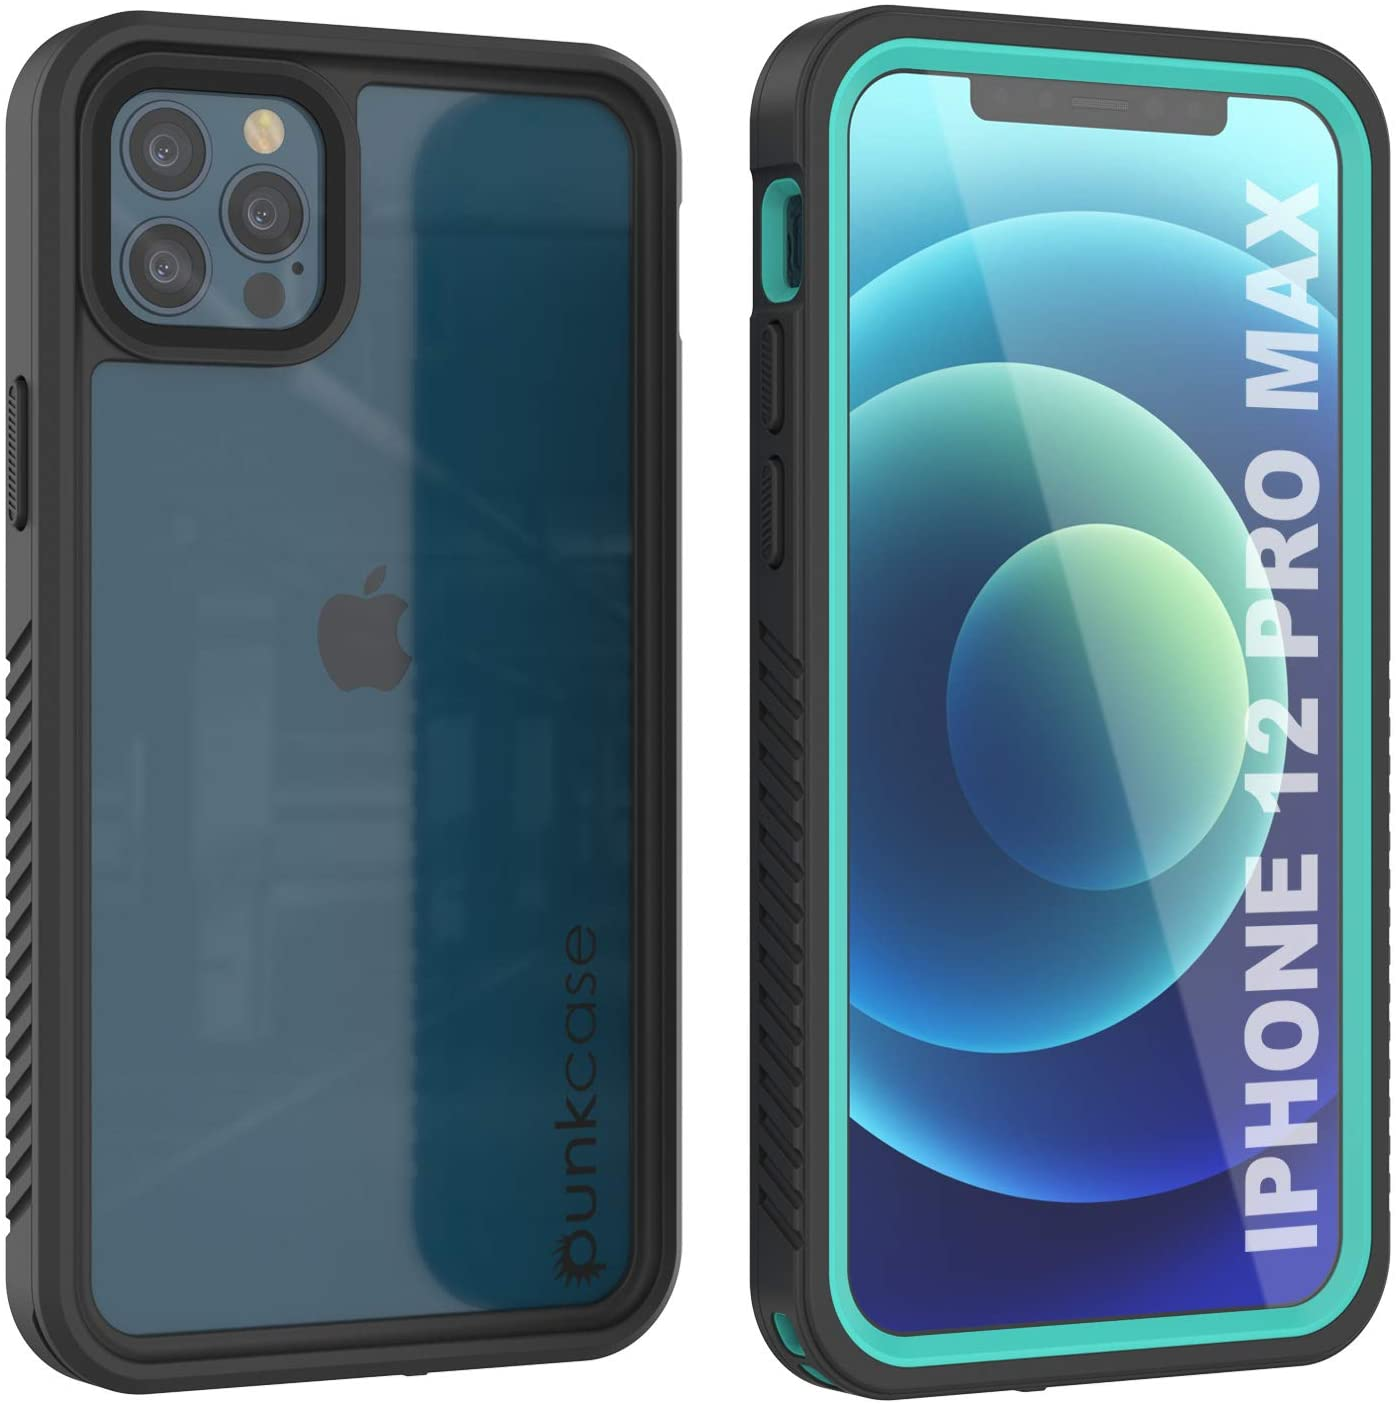 iPhone 12 Pro Max Waterproof Case, Punkcase [Extreme Series] Armor Cover W/ Built In Screen Protector [Teal]